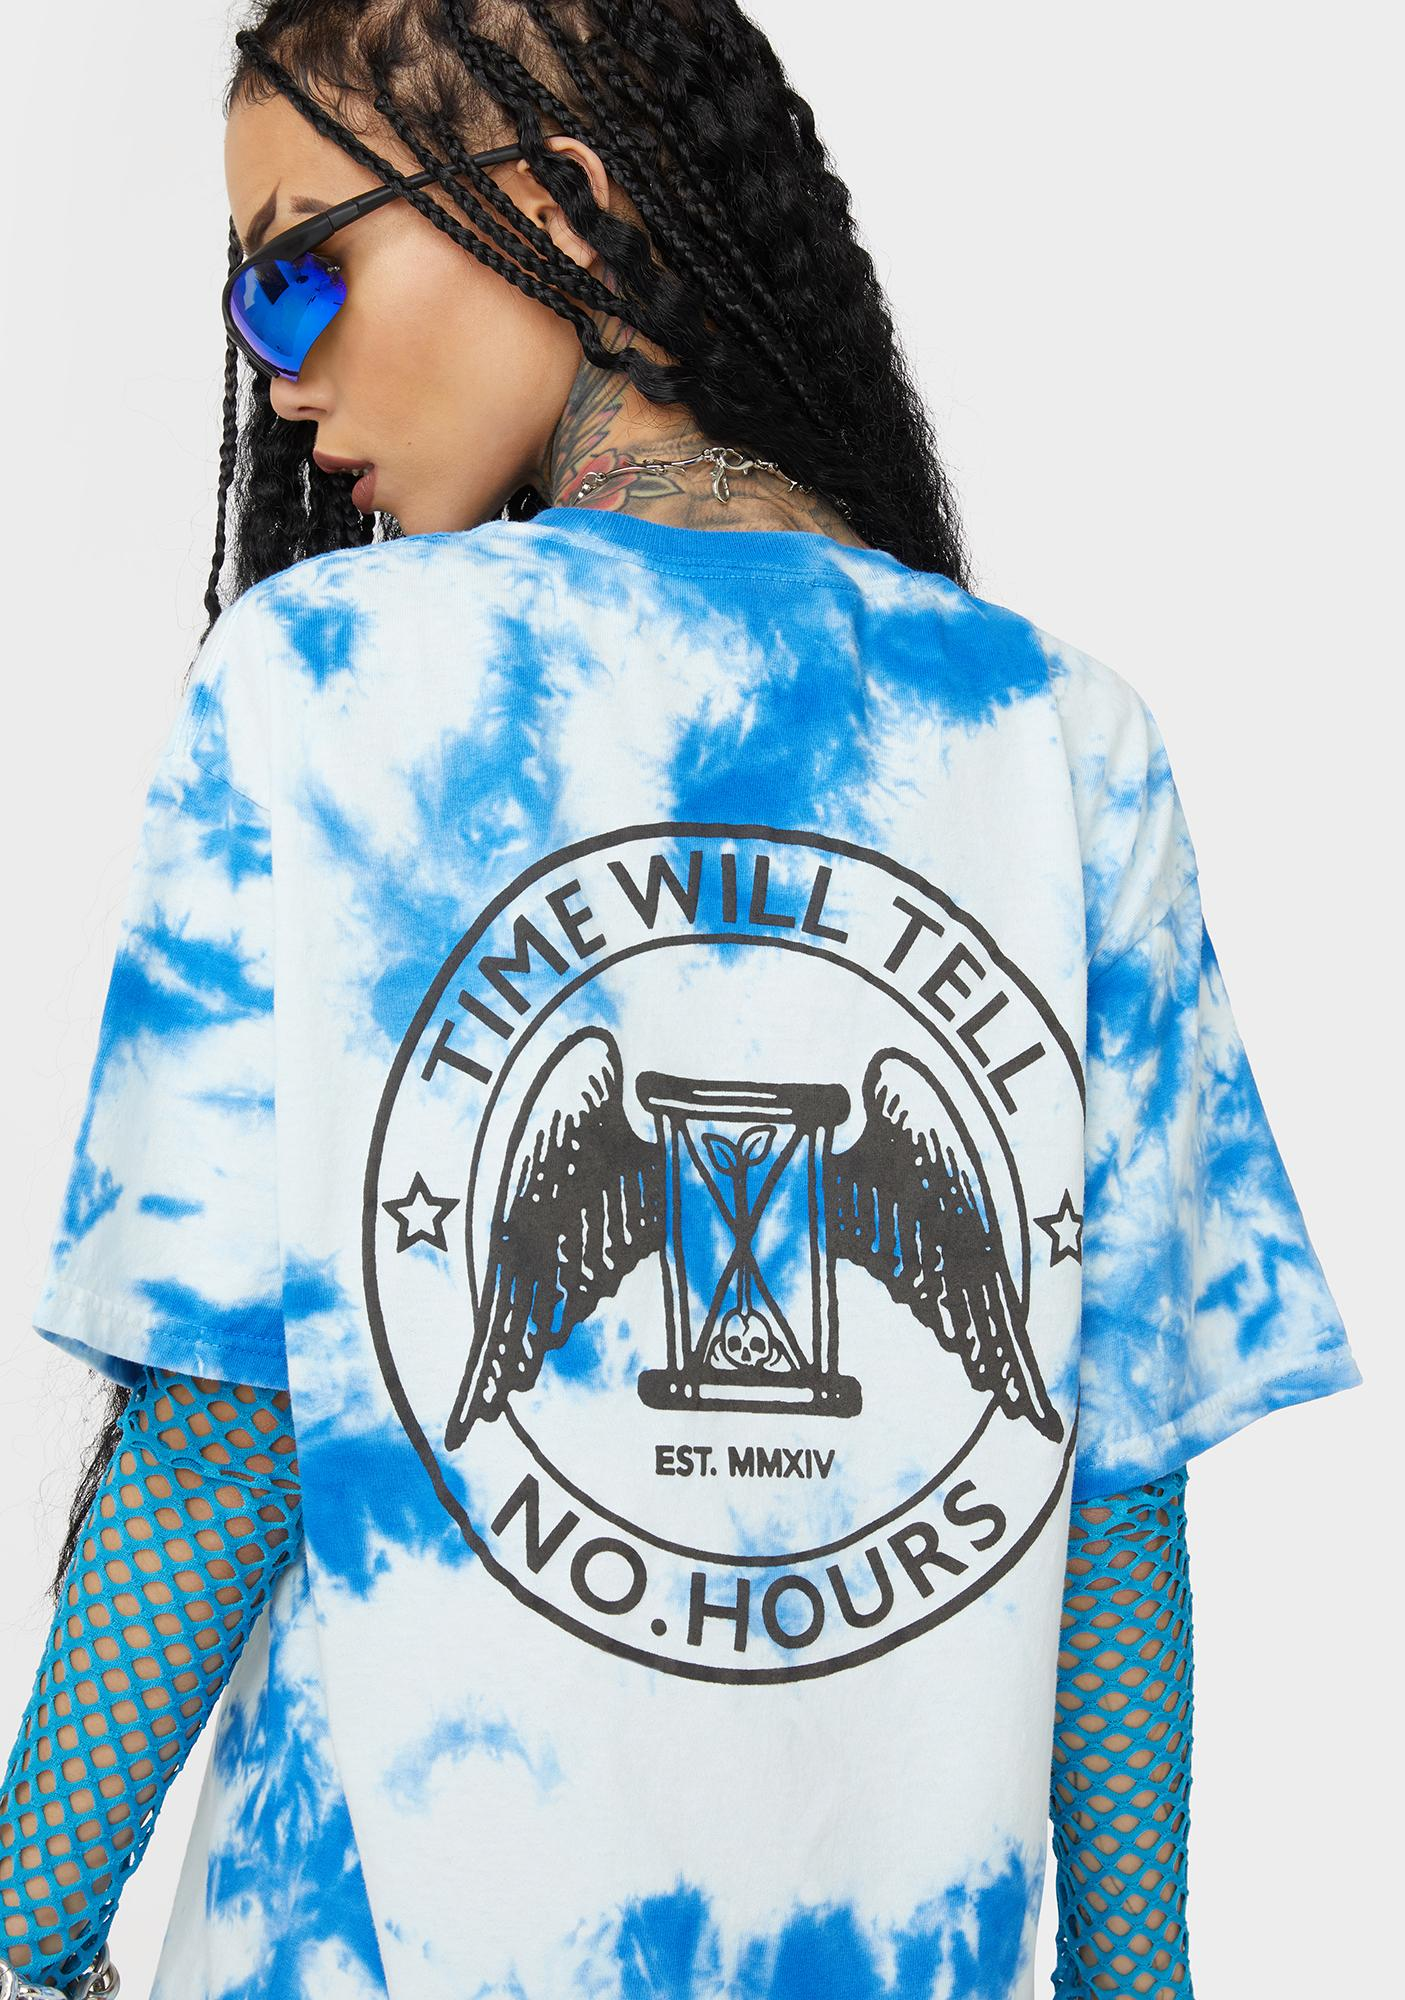 No Hours Above All Graphic Tee